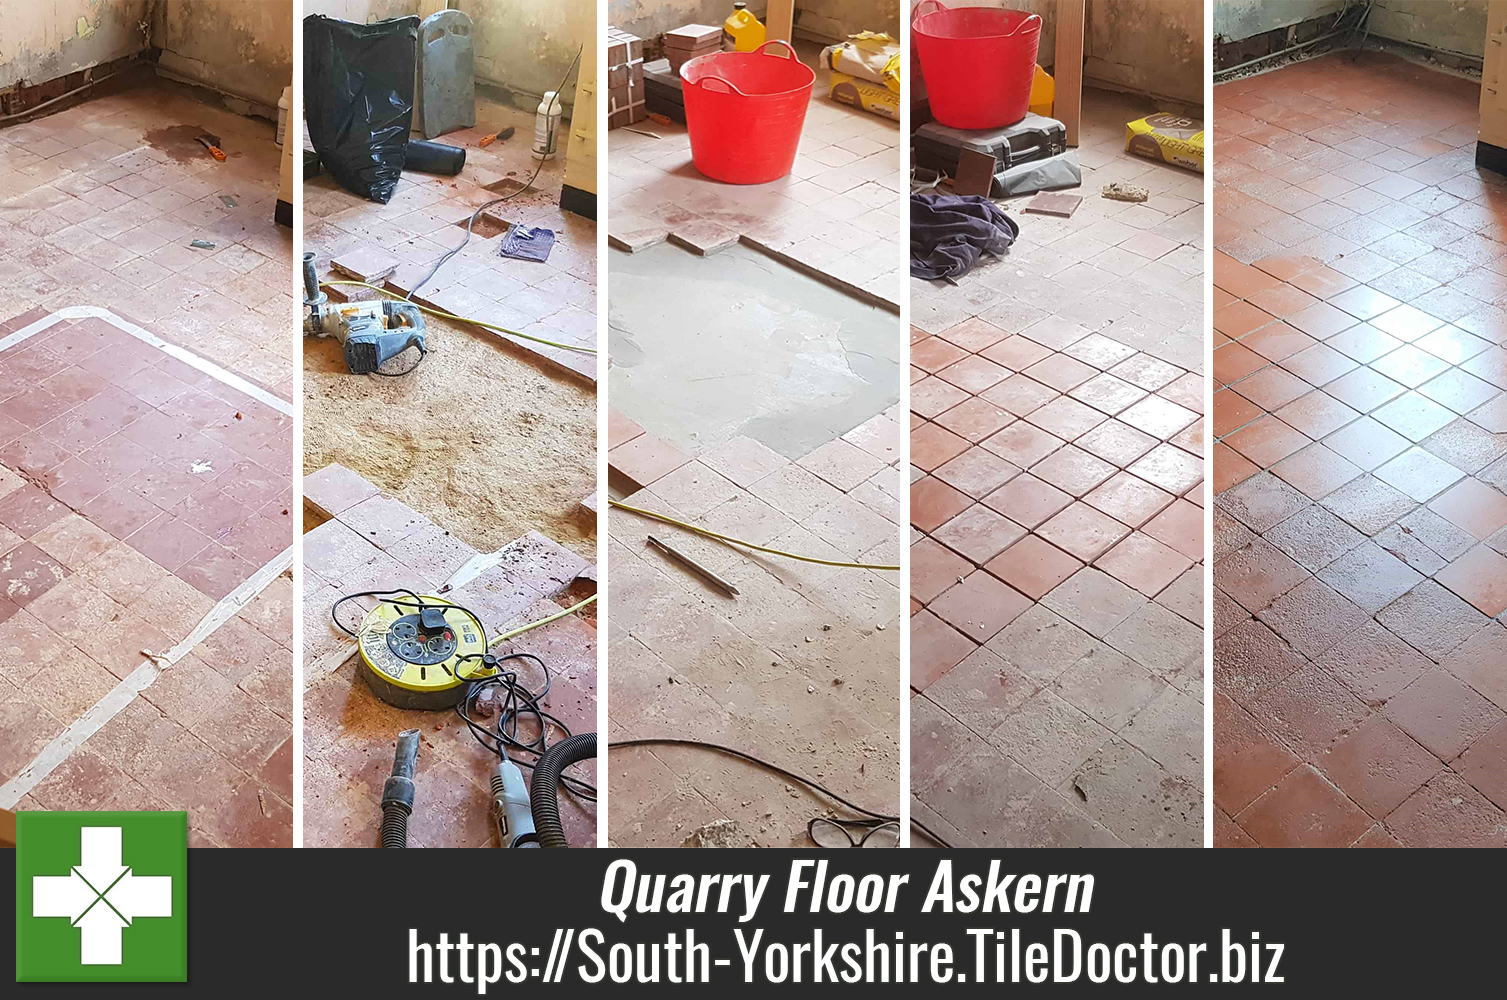 Full Restoration of a 150-Year-old Clay Quarry Tiled Floor in Askern